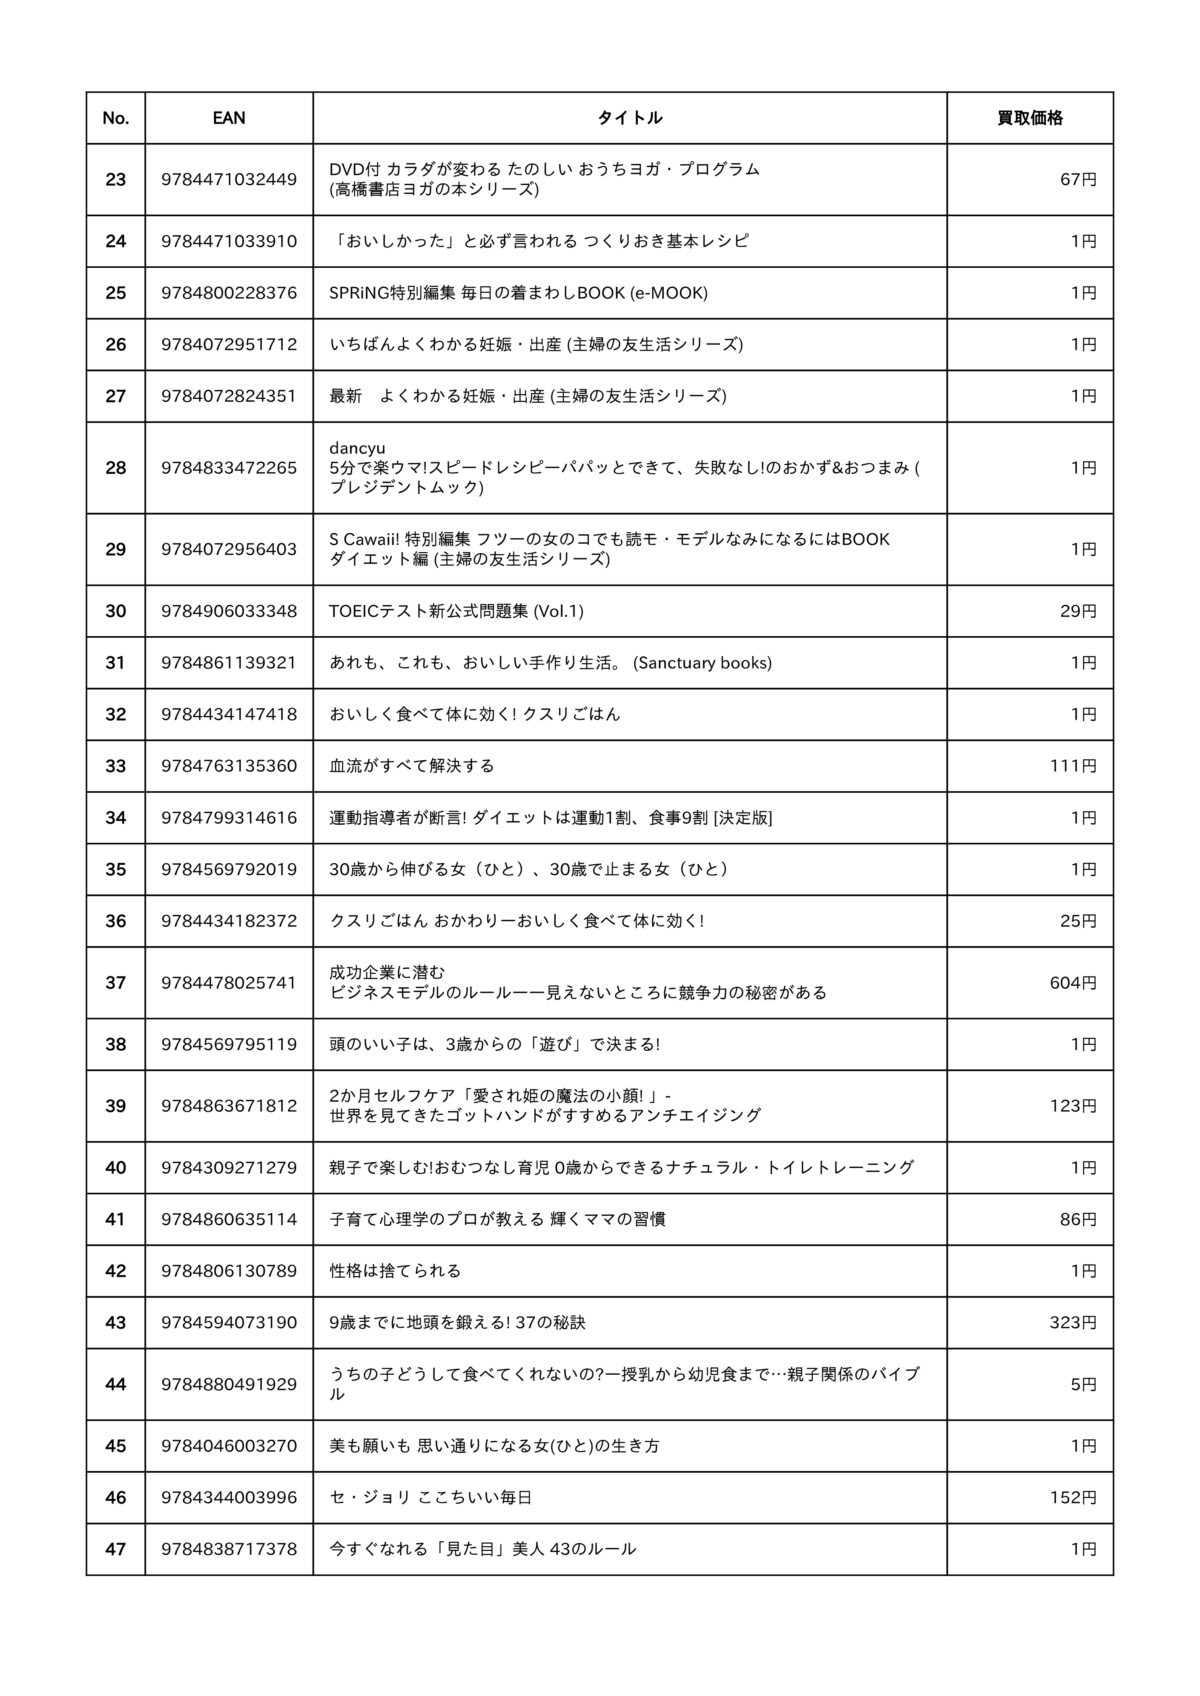 BUY王の査定結果明細 書籍 その2